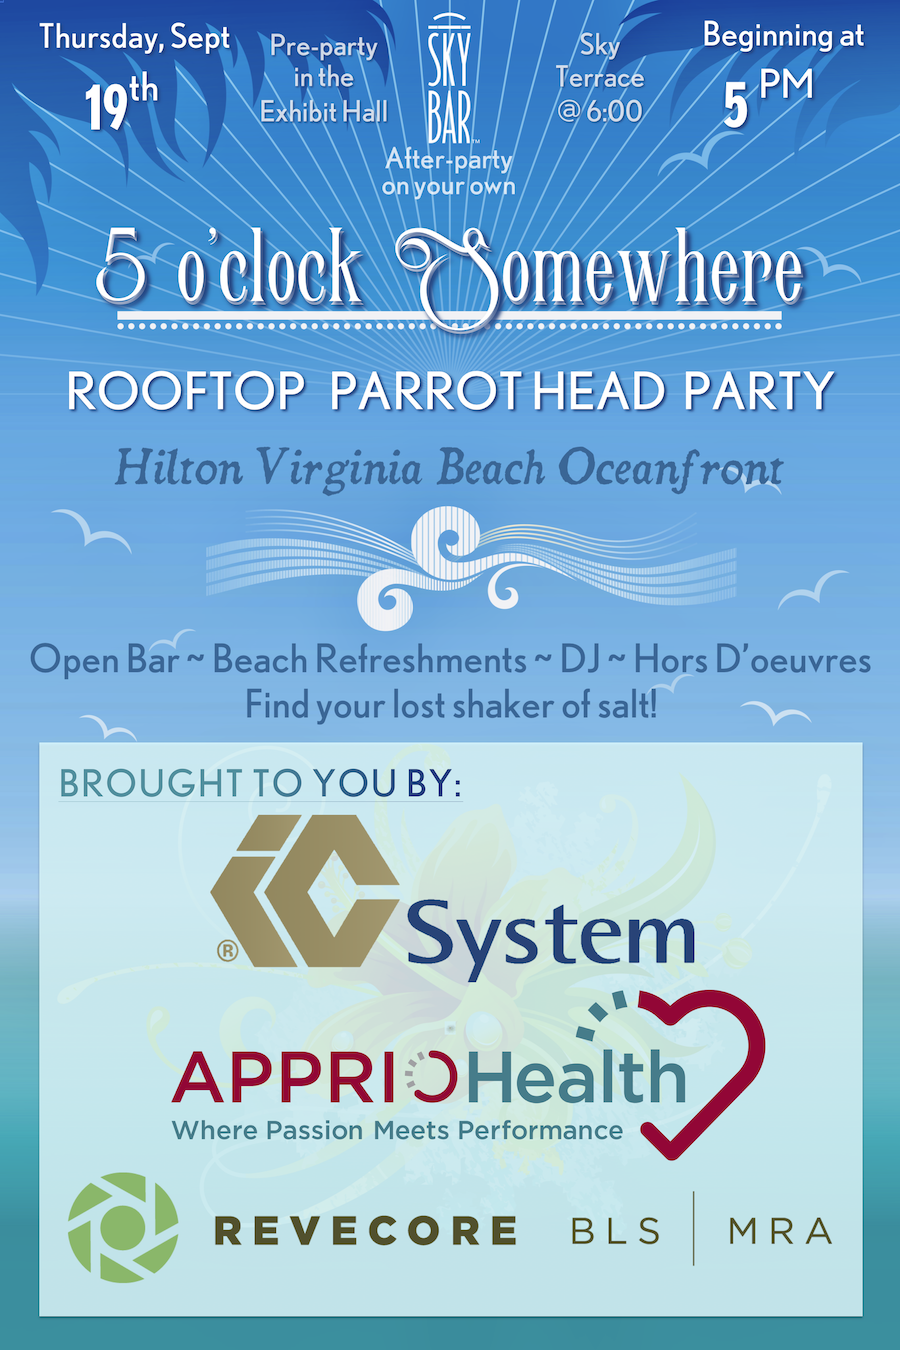 RooftopParrotPartyFINALwithREVECORE